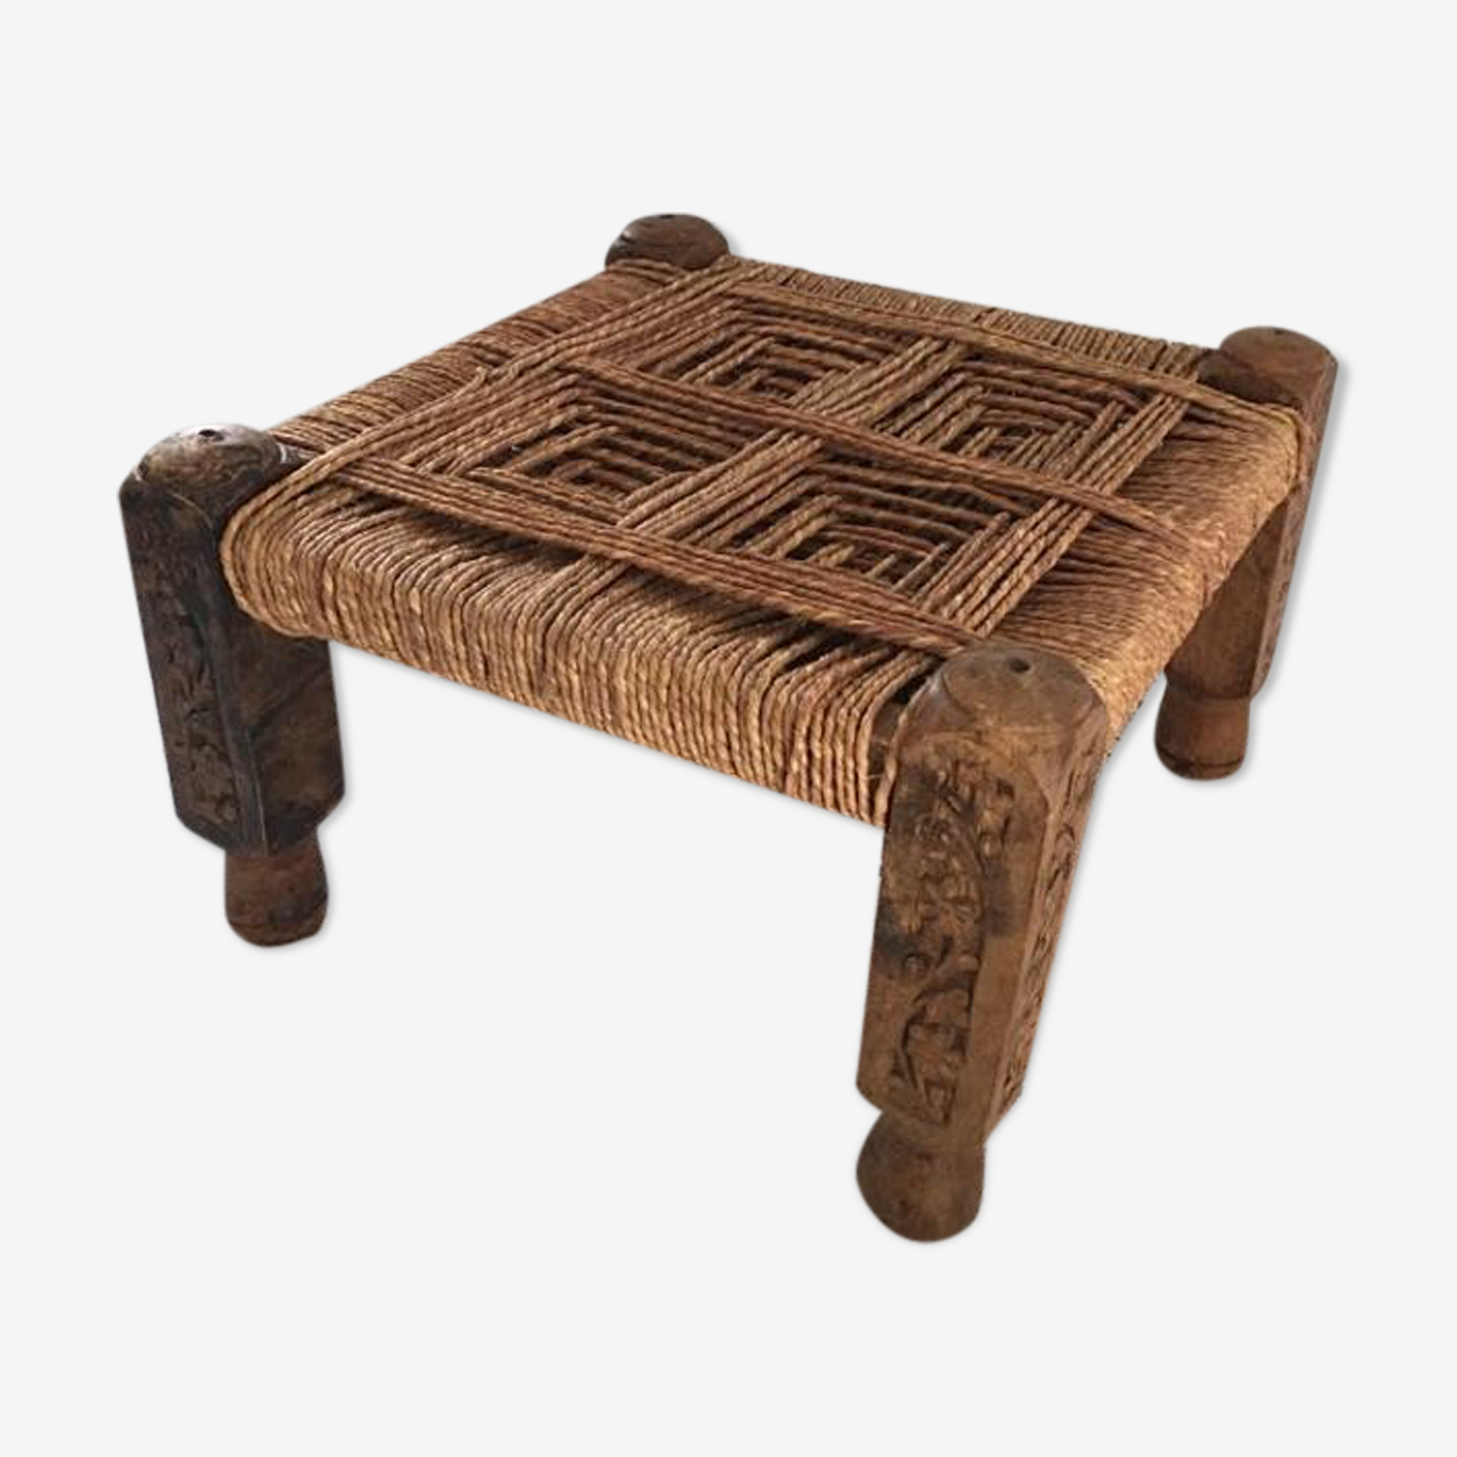 Stool in wood and rope ethnic style